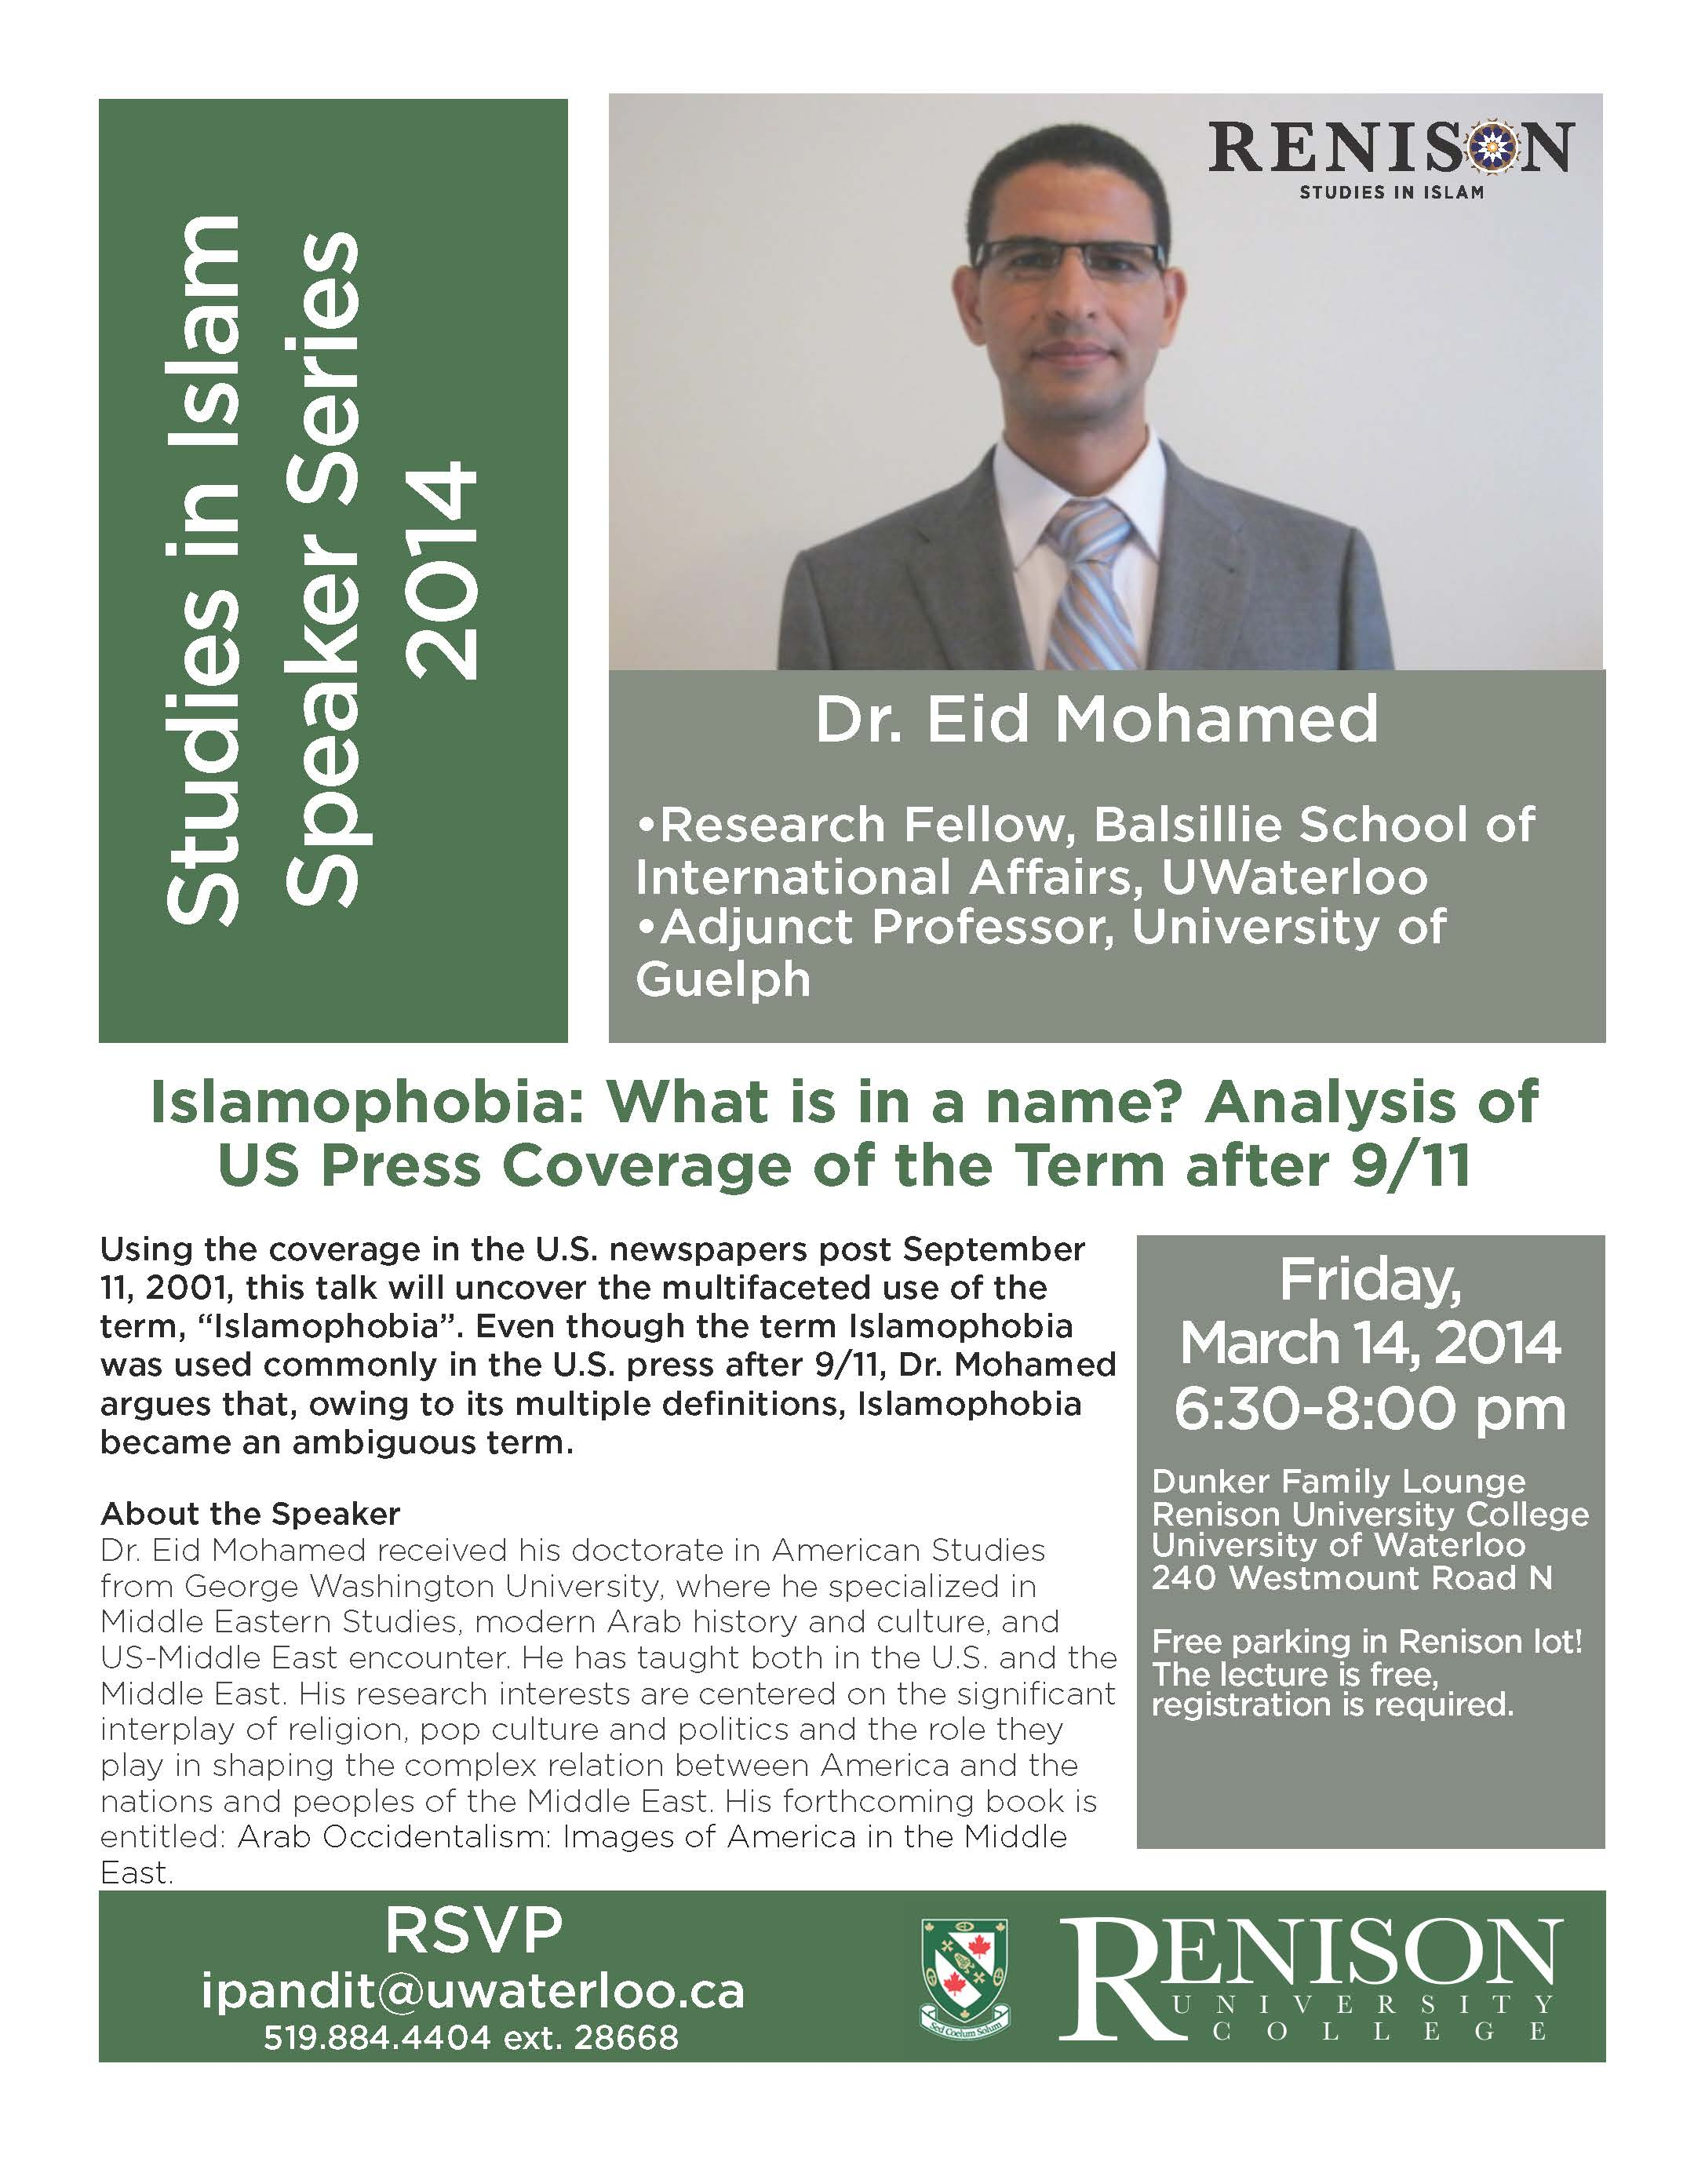 poster for SI Series: Islamophobia